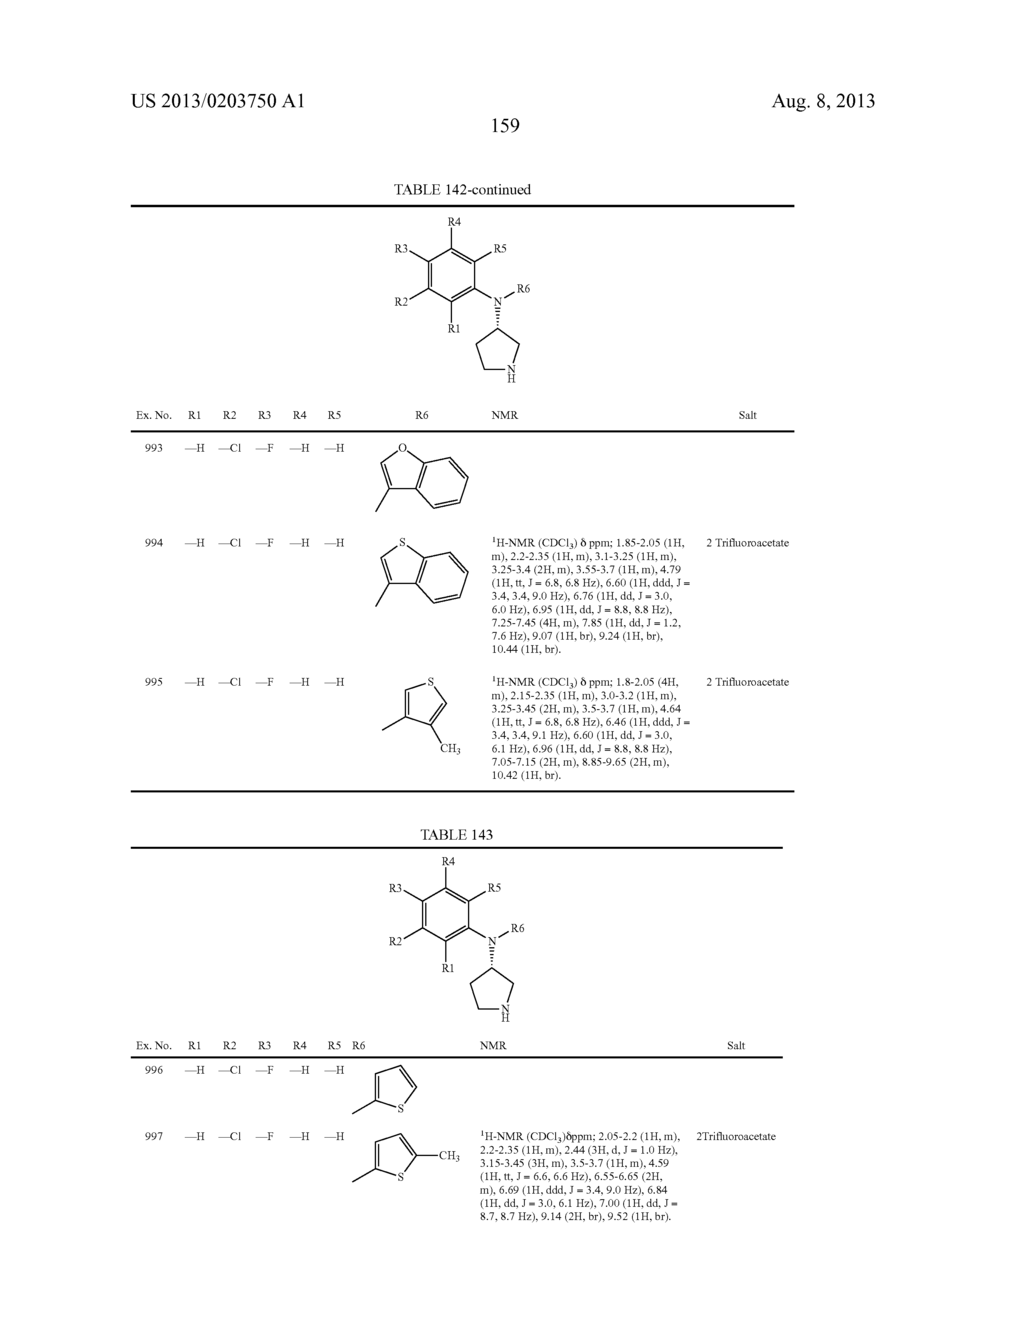 N,N-SUBSTITUTED 3-AMINOPYRROLIDINE COMPOUNDS USEFUL AS MONOAMINES REUPTAKE     INHIBITORS - diagram, schematic, and image 160